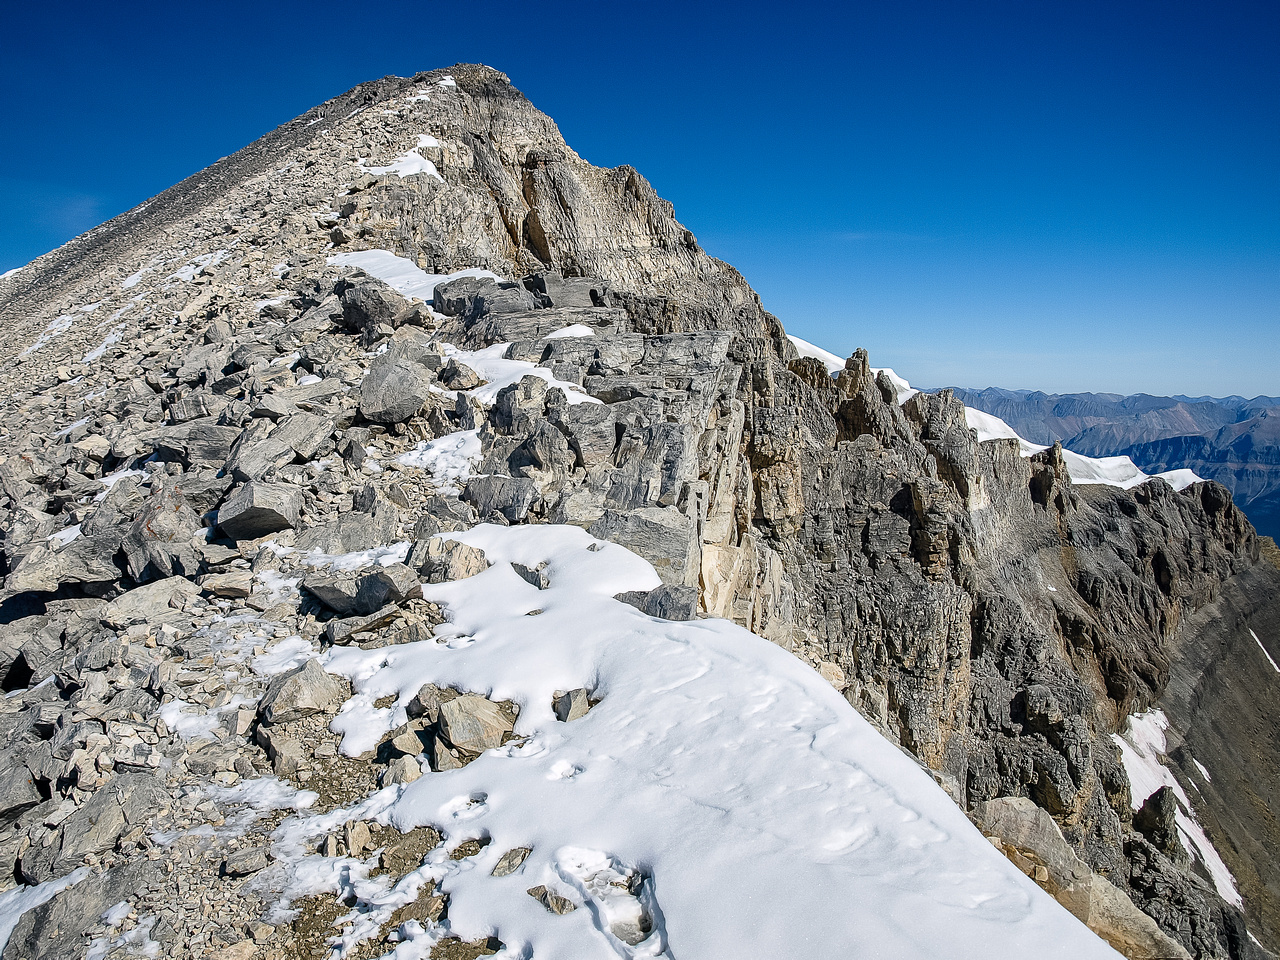 The summit ridge of Mount Temple.